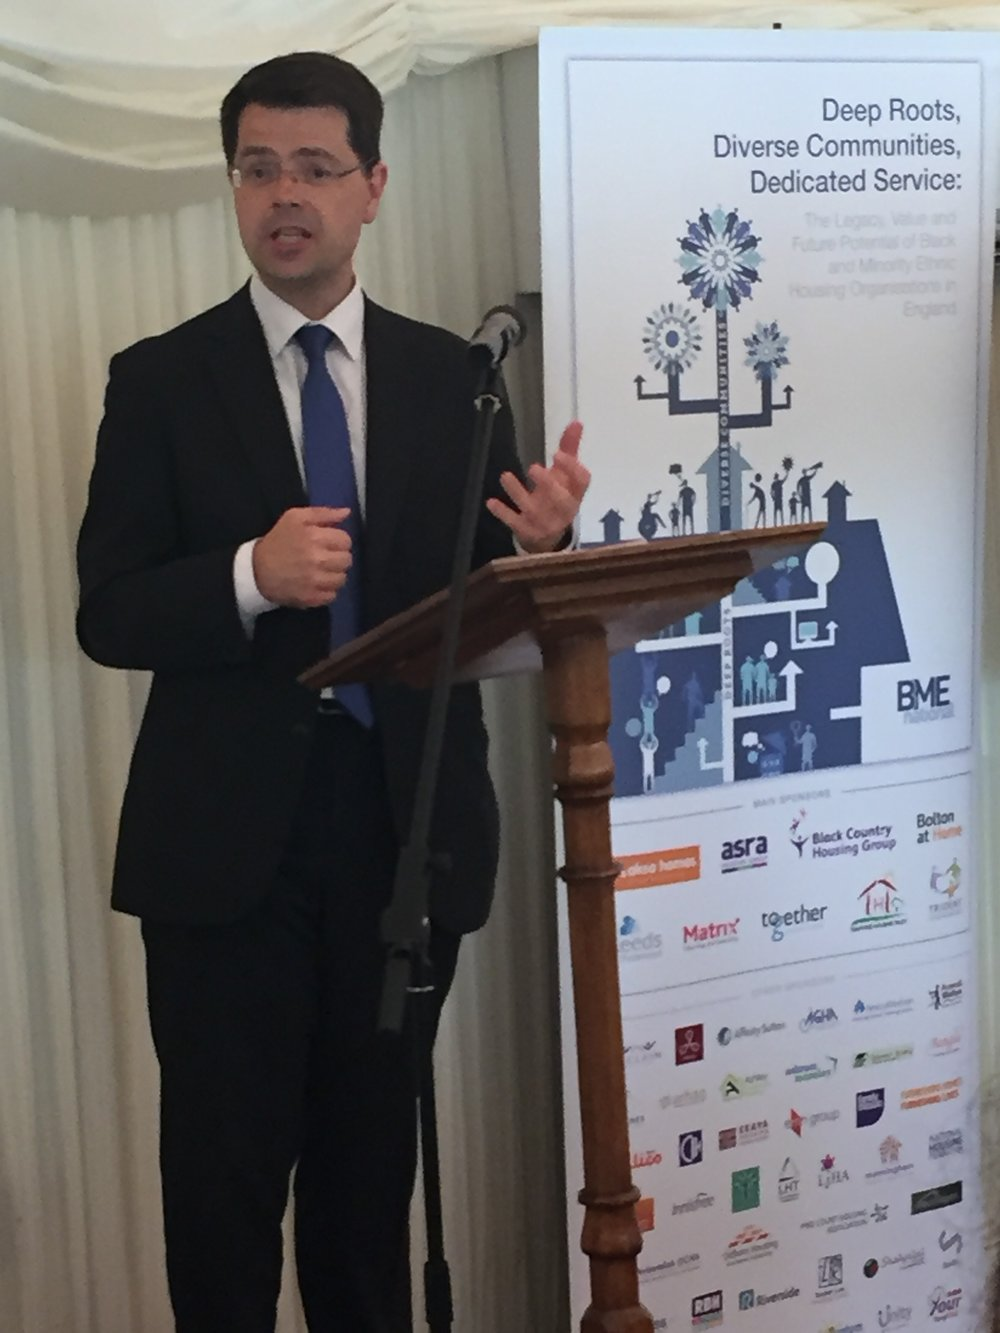 James Brokenshire at the BME National celebration event